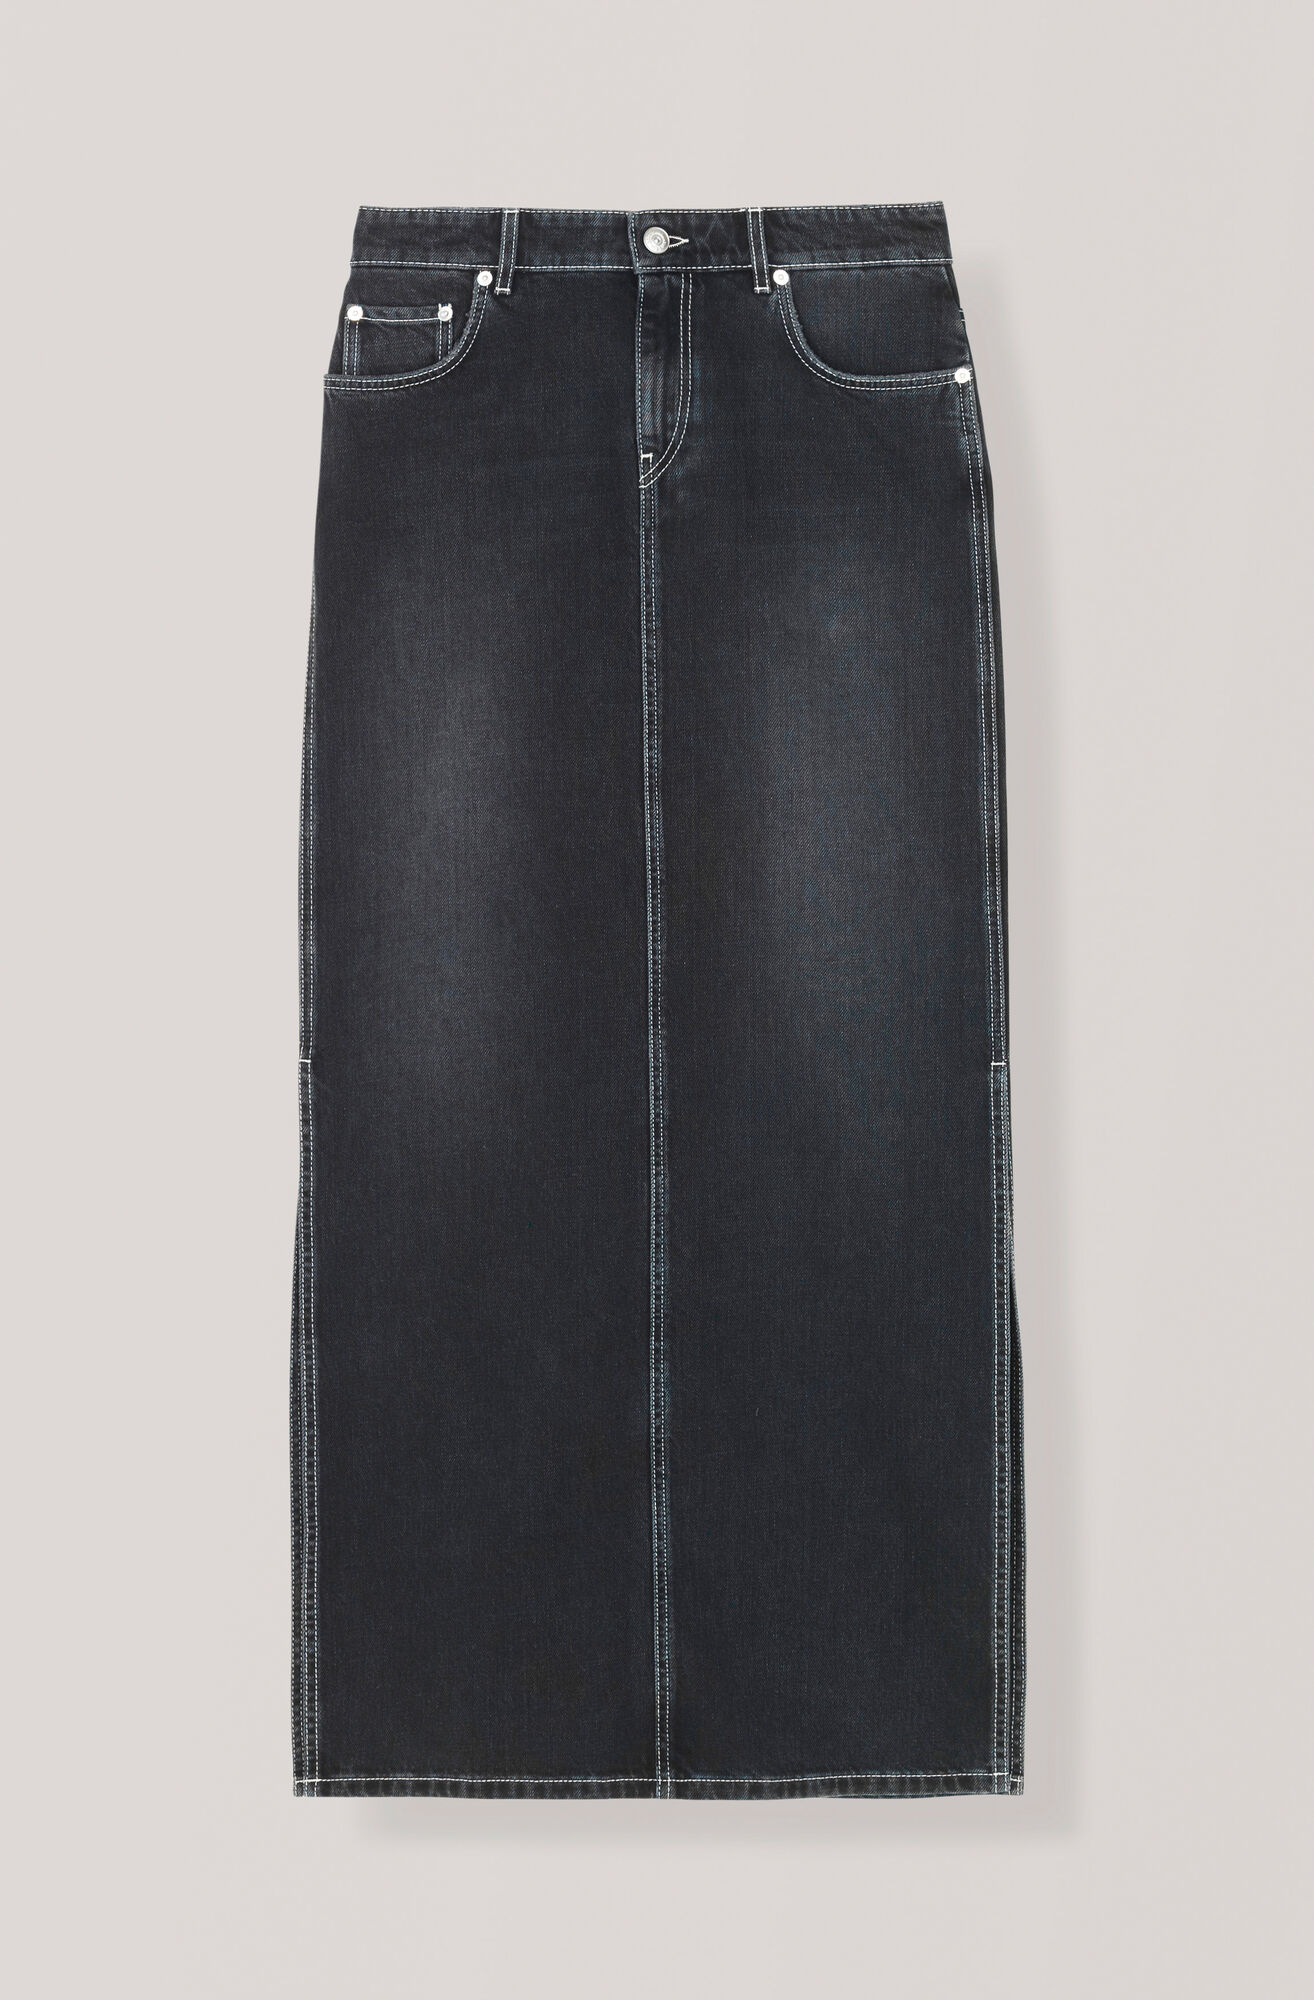 Black Washed Denim Maxi Skirt, Black Washed, hi-res